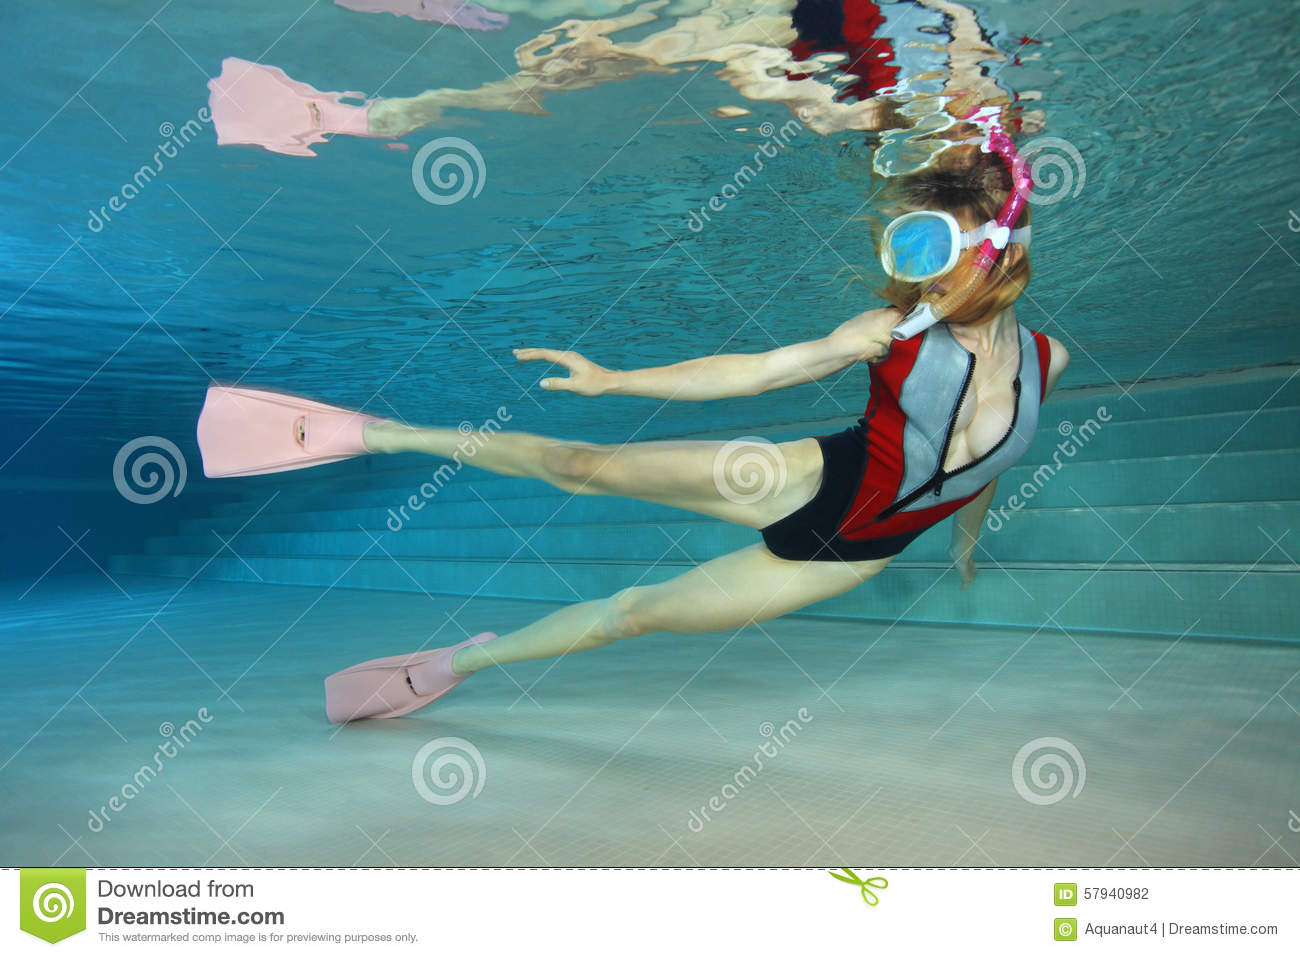 Excellent, agree Scuba diving sexy women